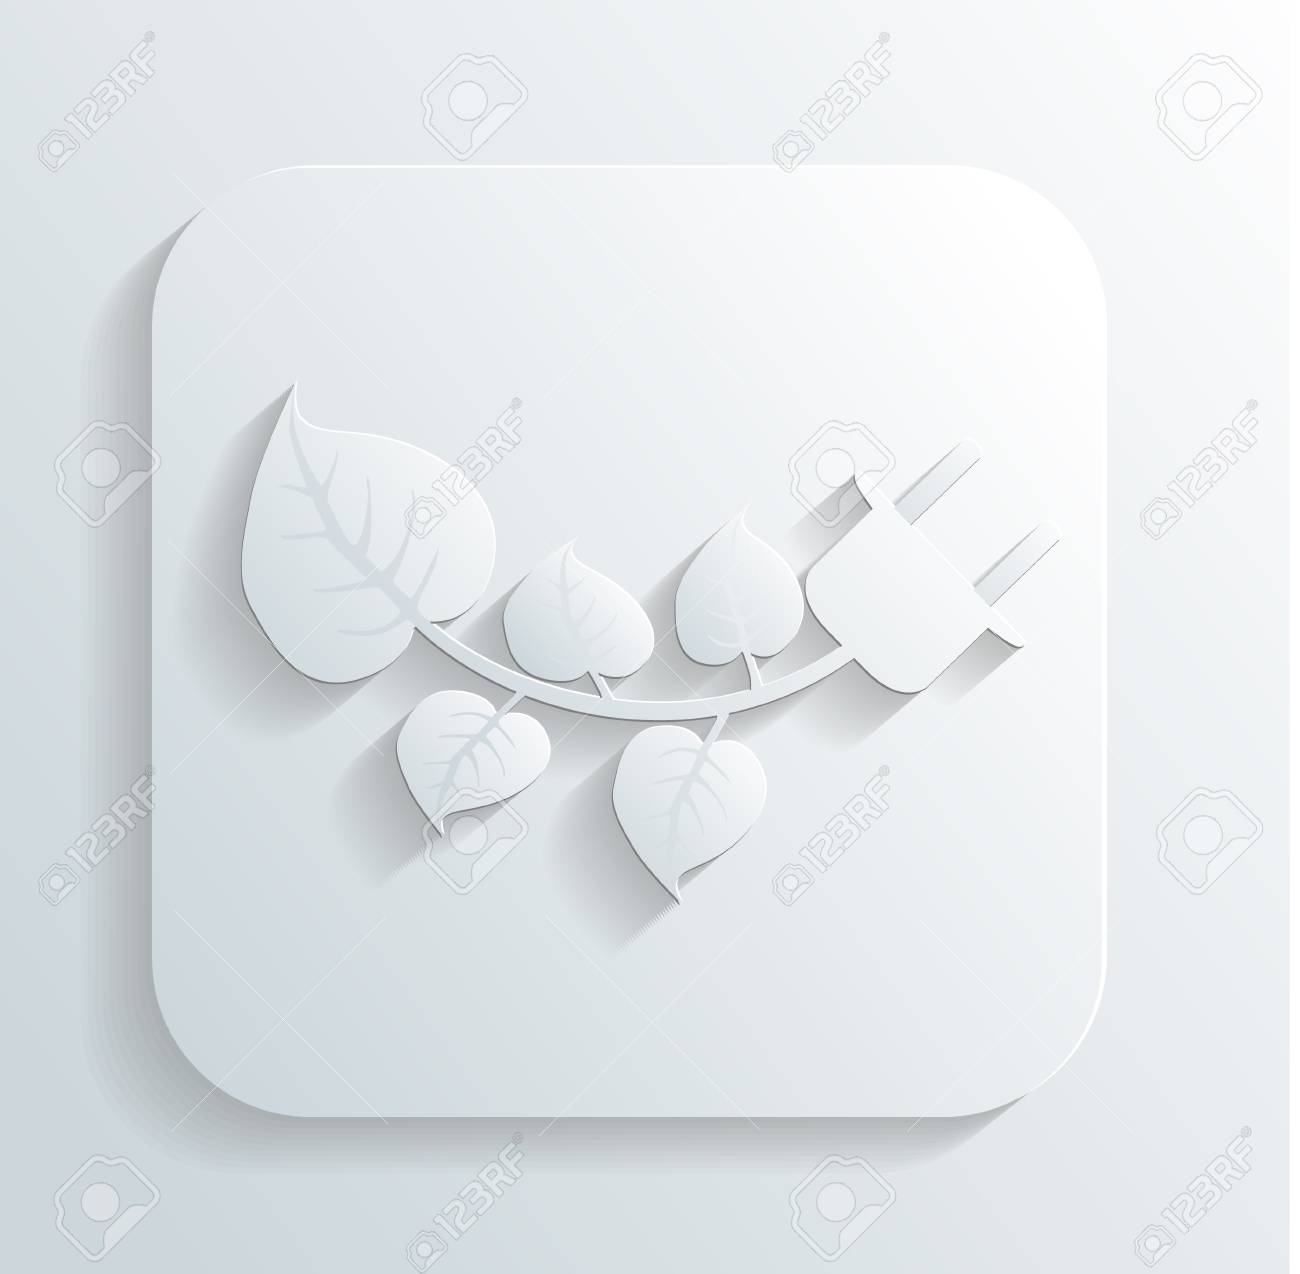 branch with leaves icon Stock Vector - 22243956